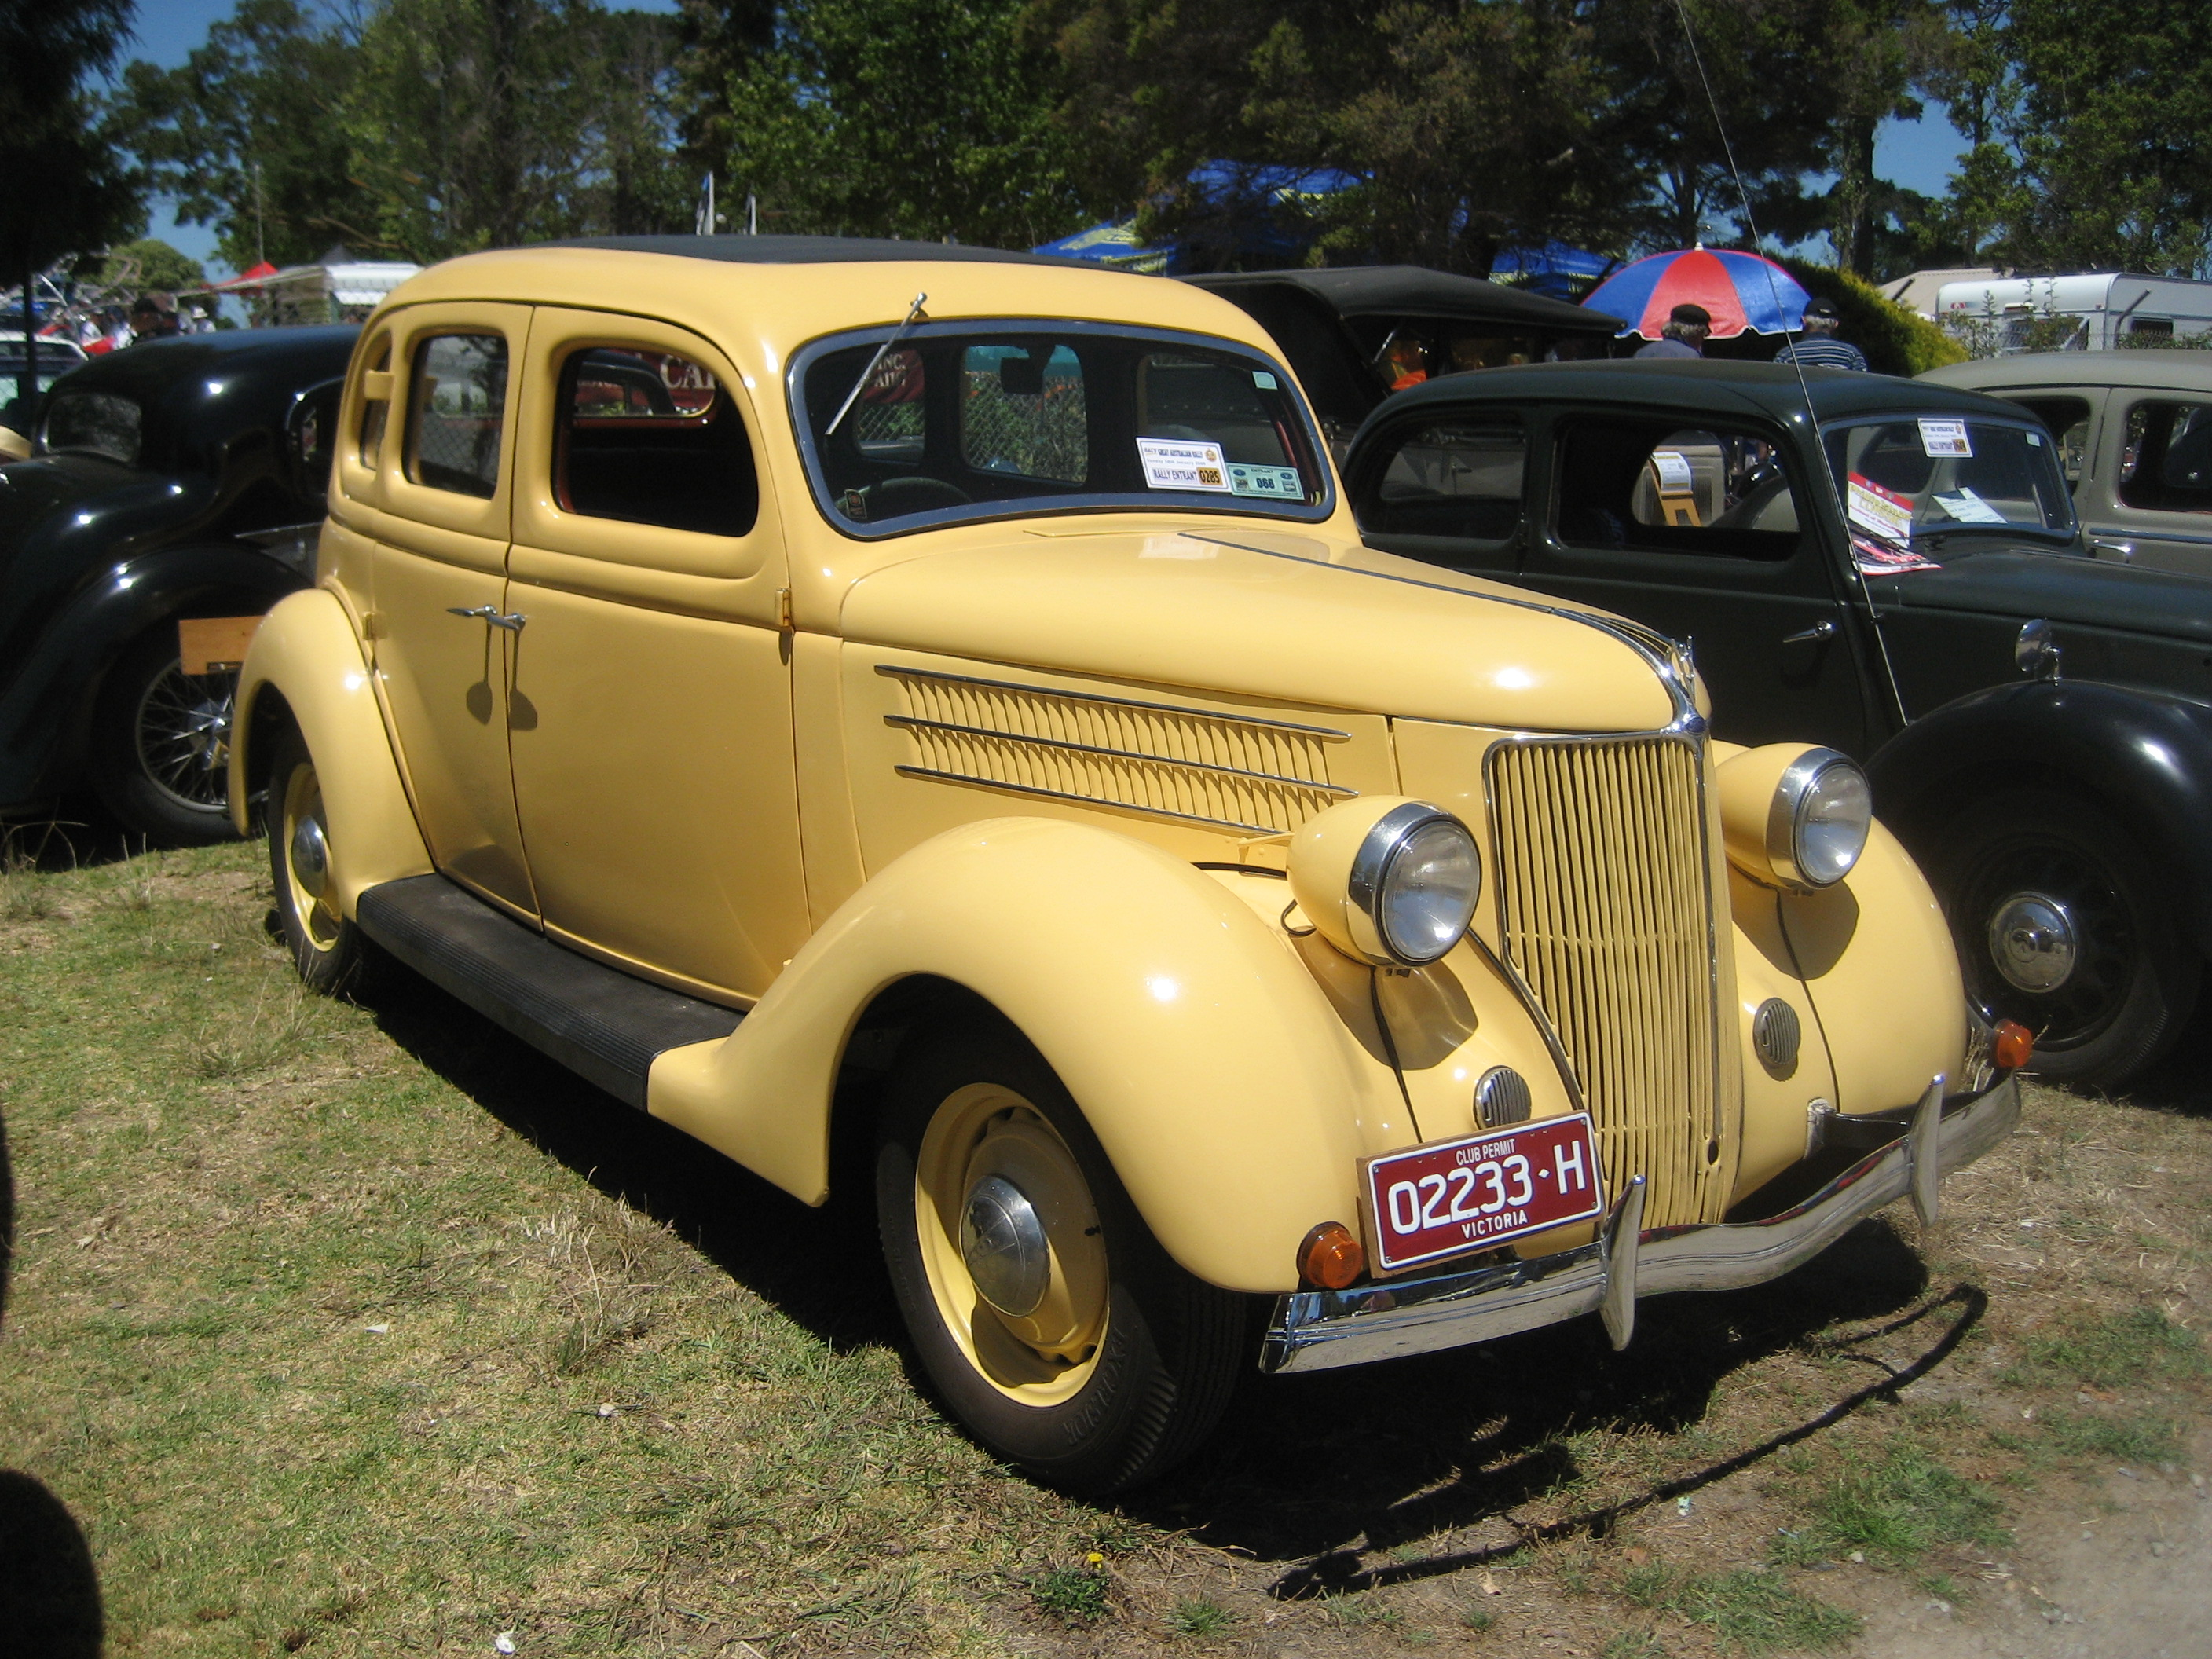 Craigslist org for sale 1936 ford coupe autos weblog for 1936 ford 3 window coupe for sale craigslist